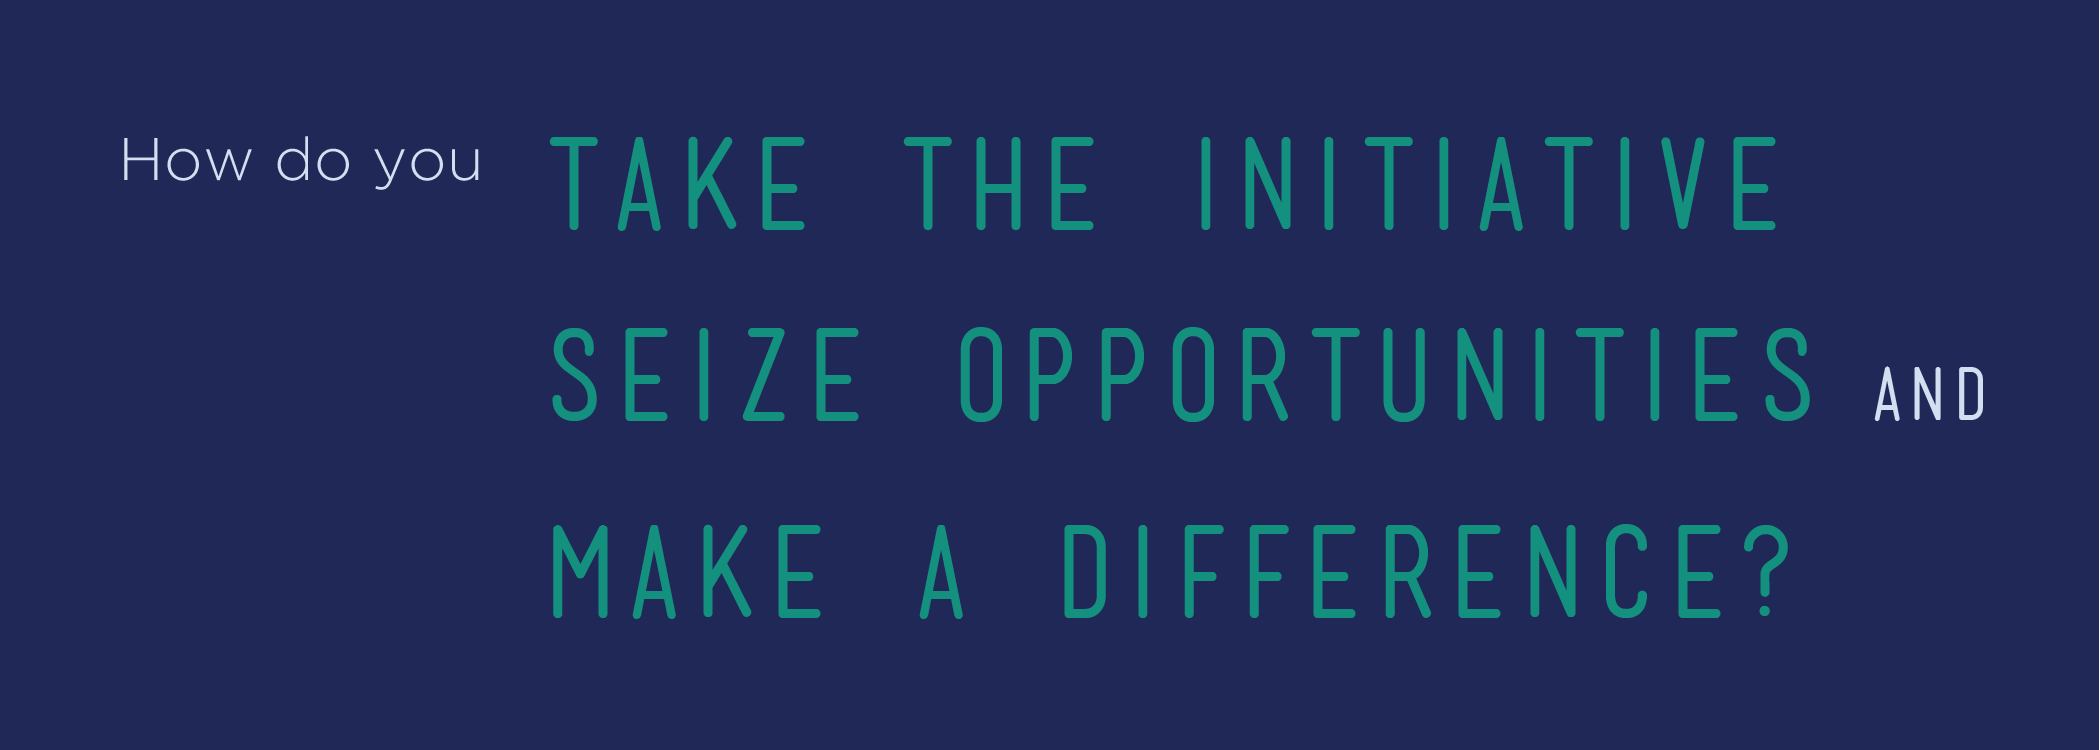 How do you take the initiative, seize opportunities and make a difference?